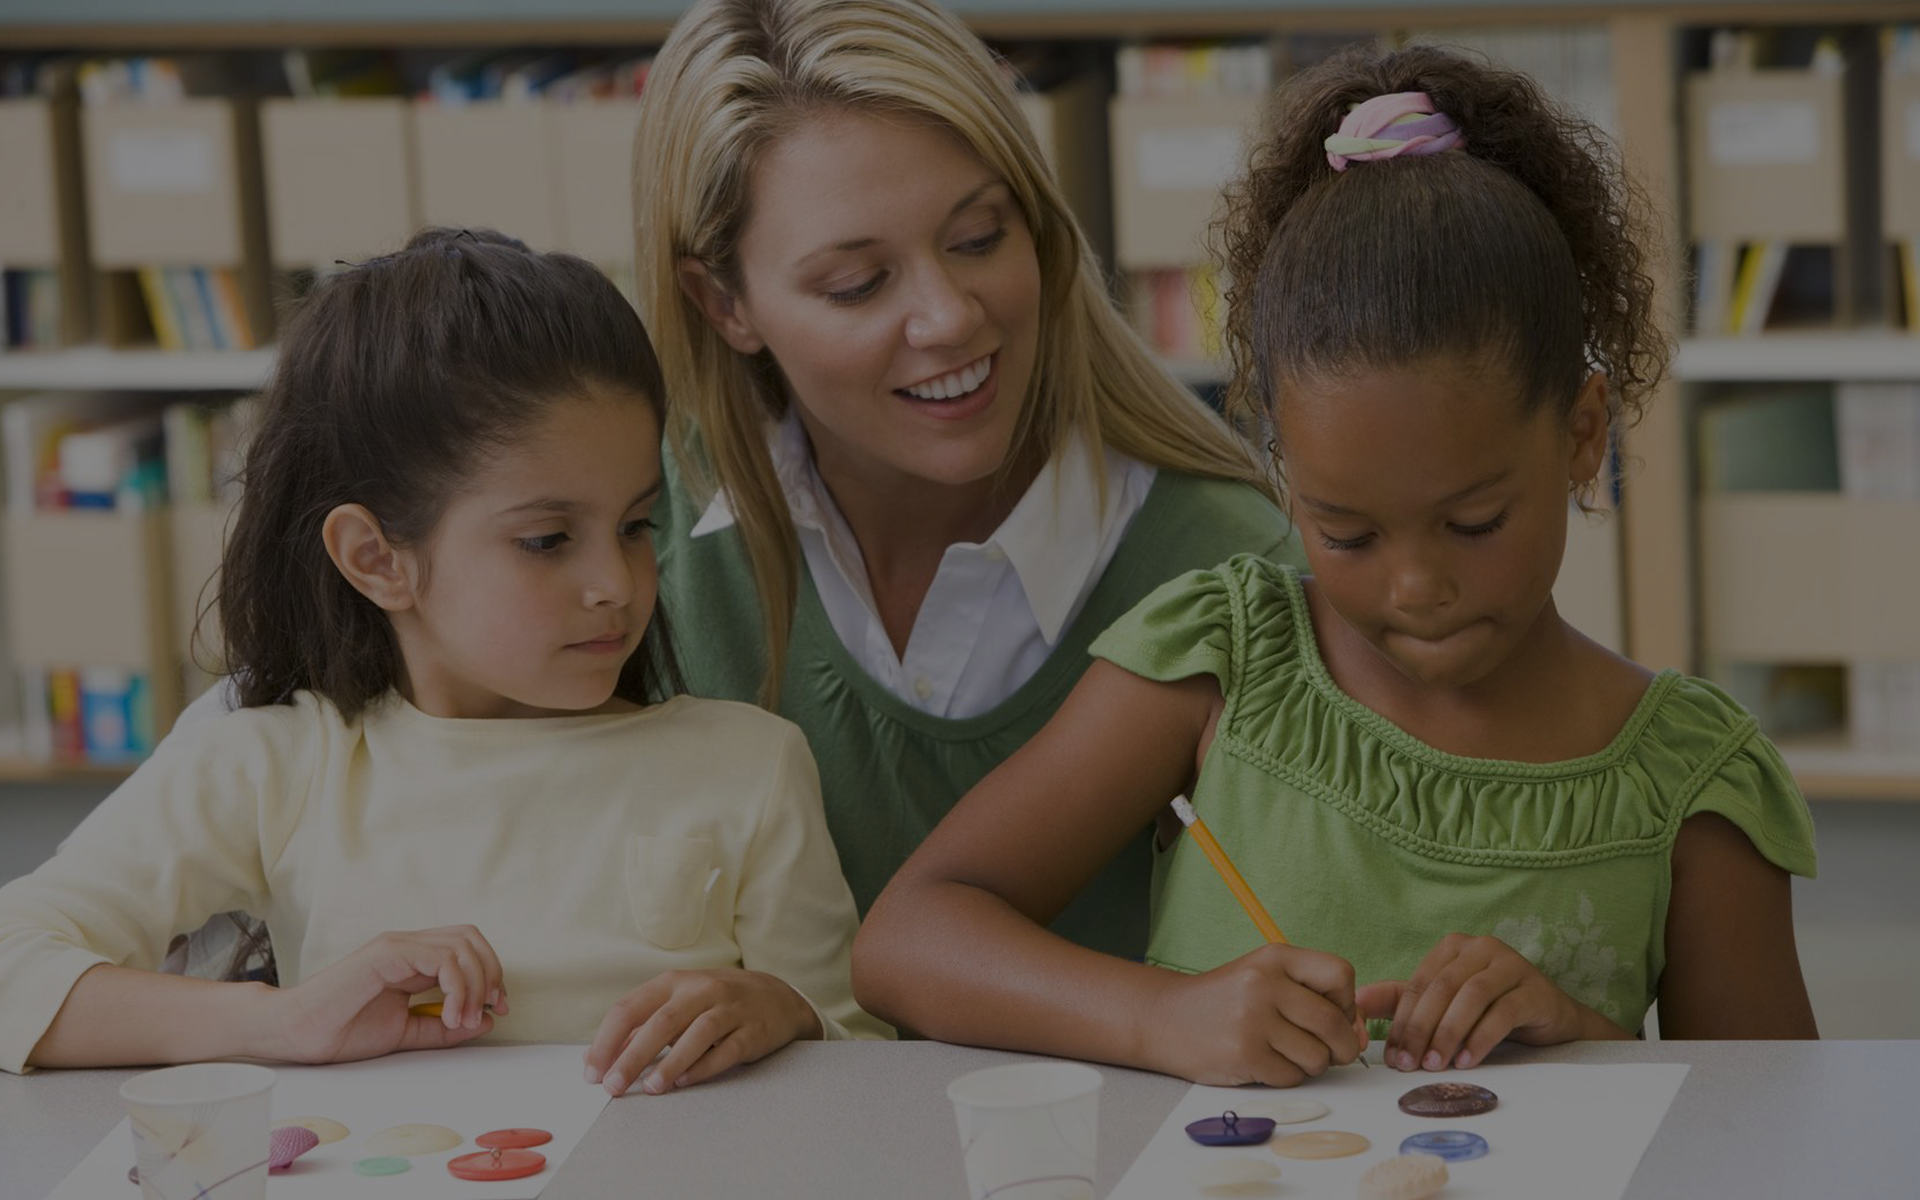 Child care training classes welcome to child care onlineself paced training classes all trainings are approved by the registry system xflitez Choice Image